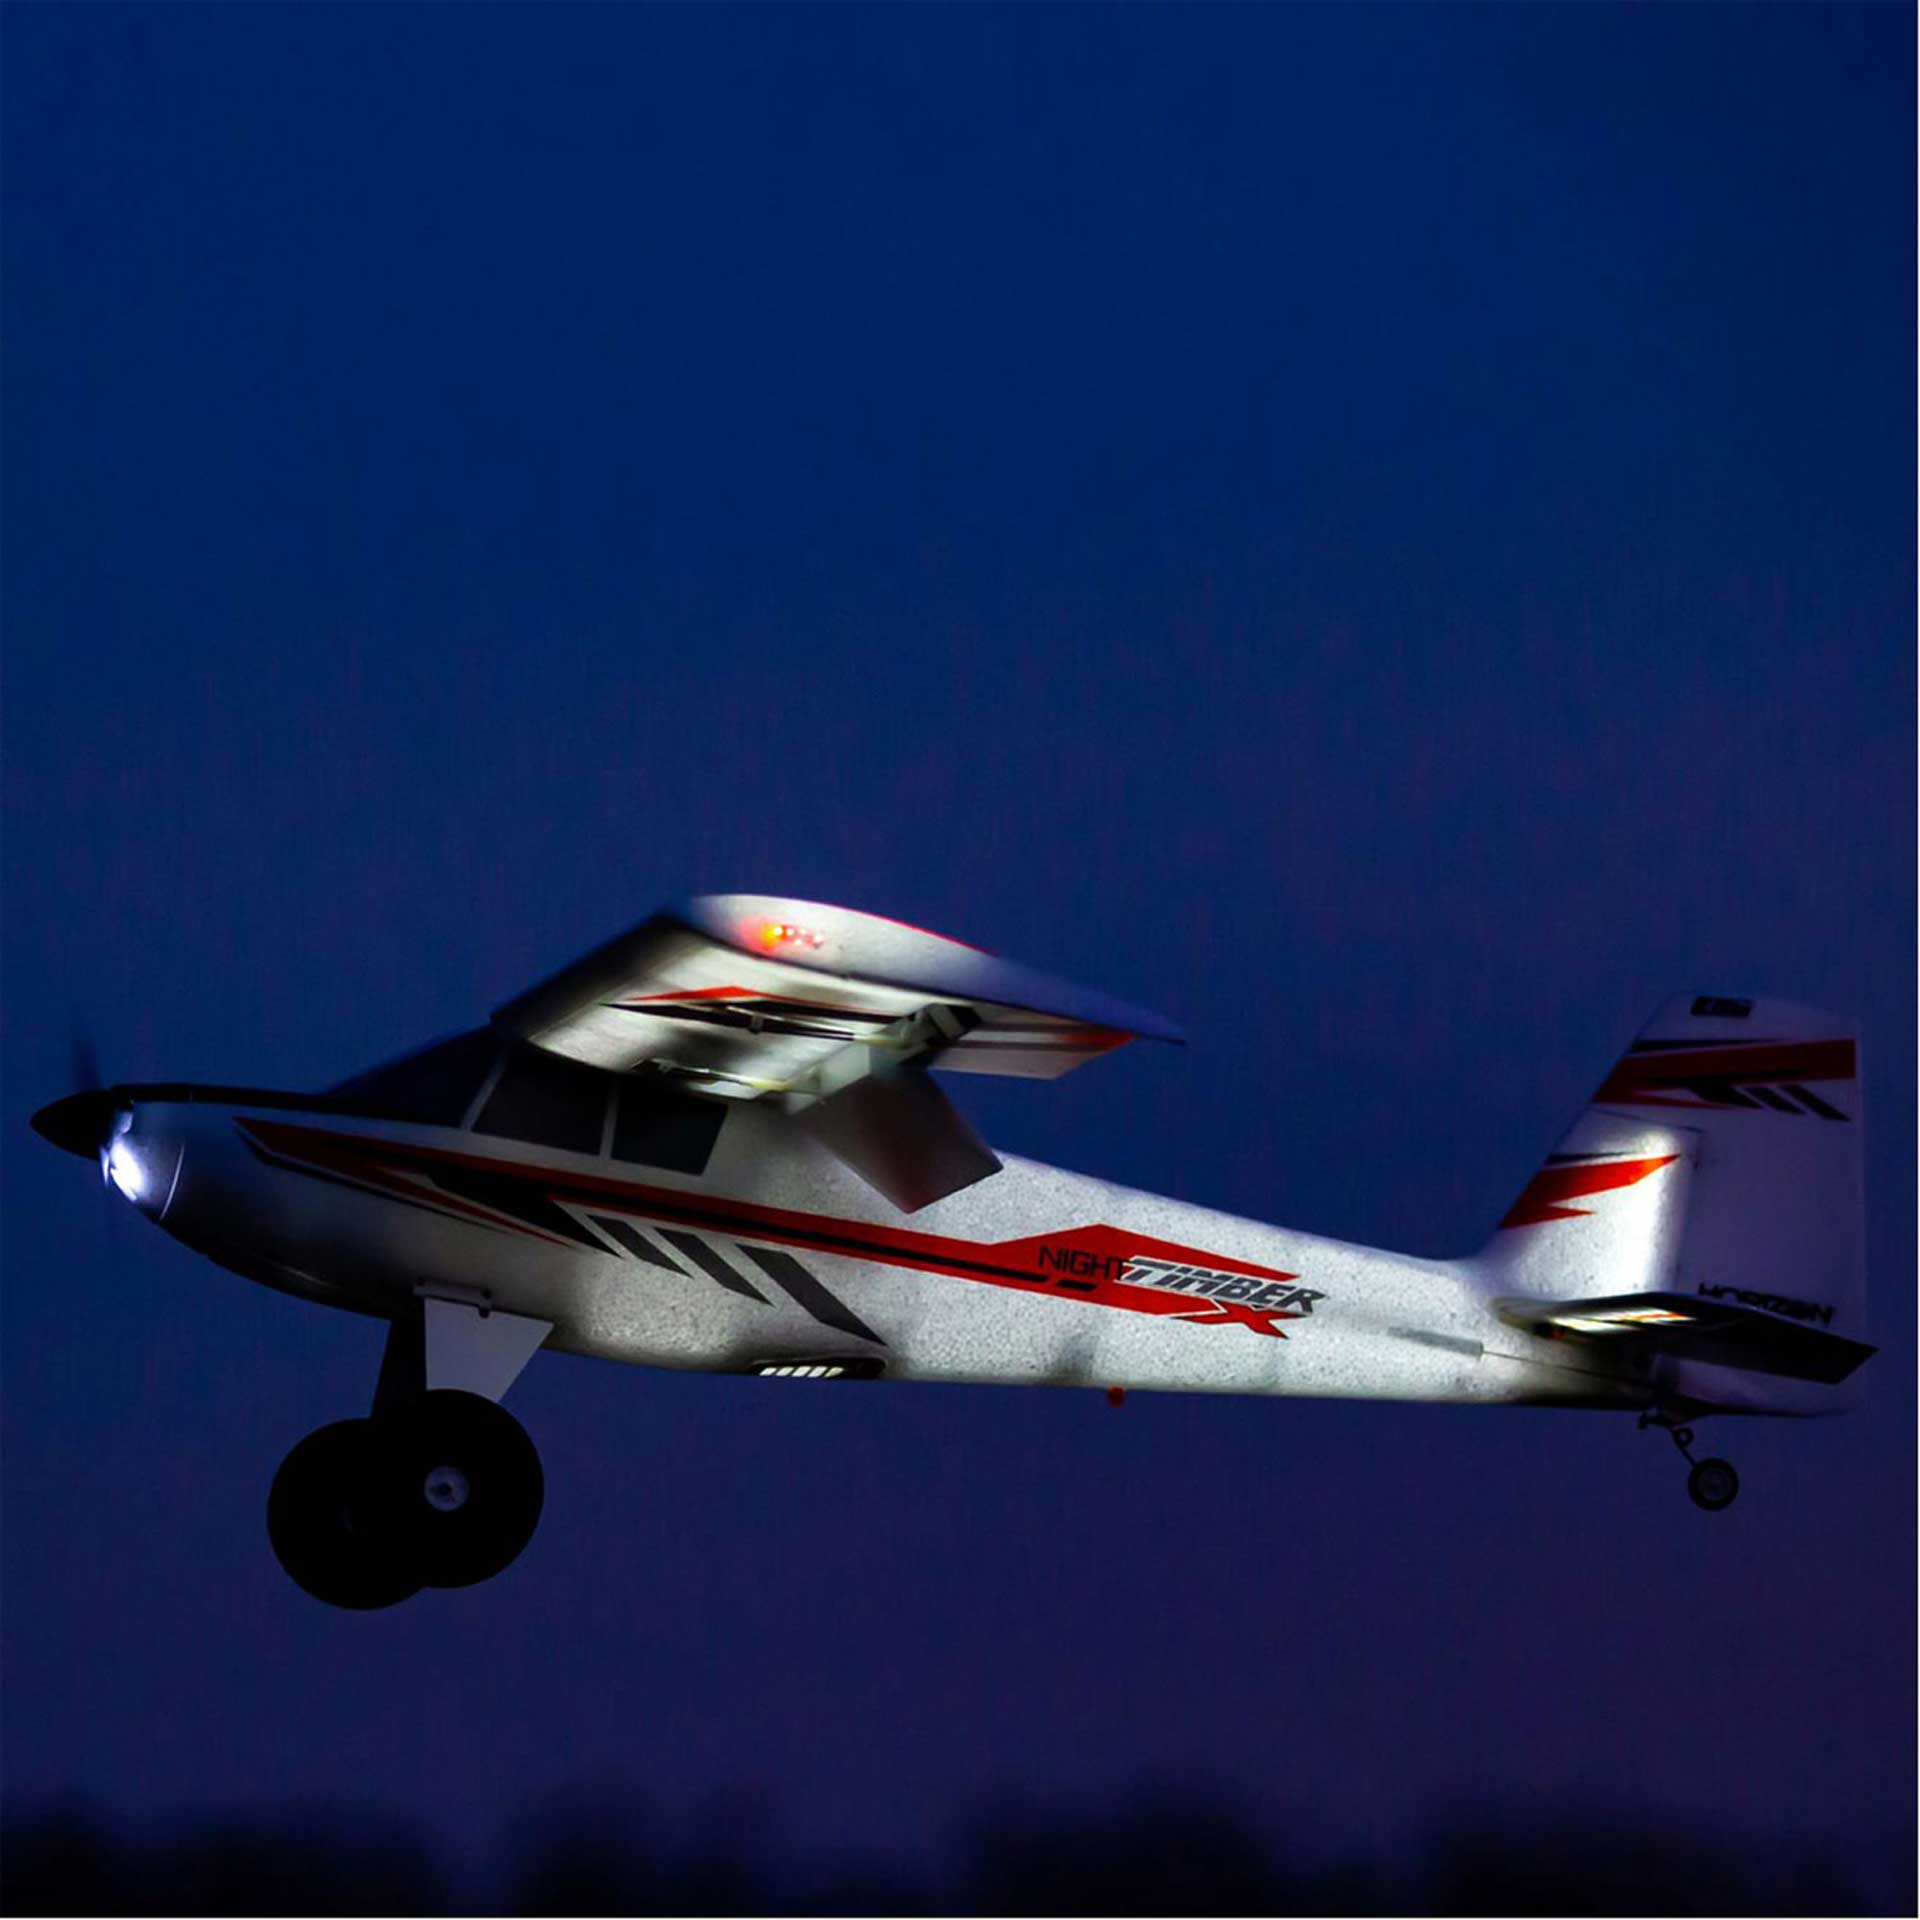 E-Flite Night Timber X 1.2M BNF Basic w/AS3X & SAFE Select